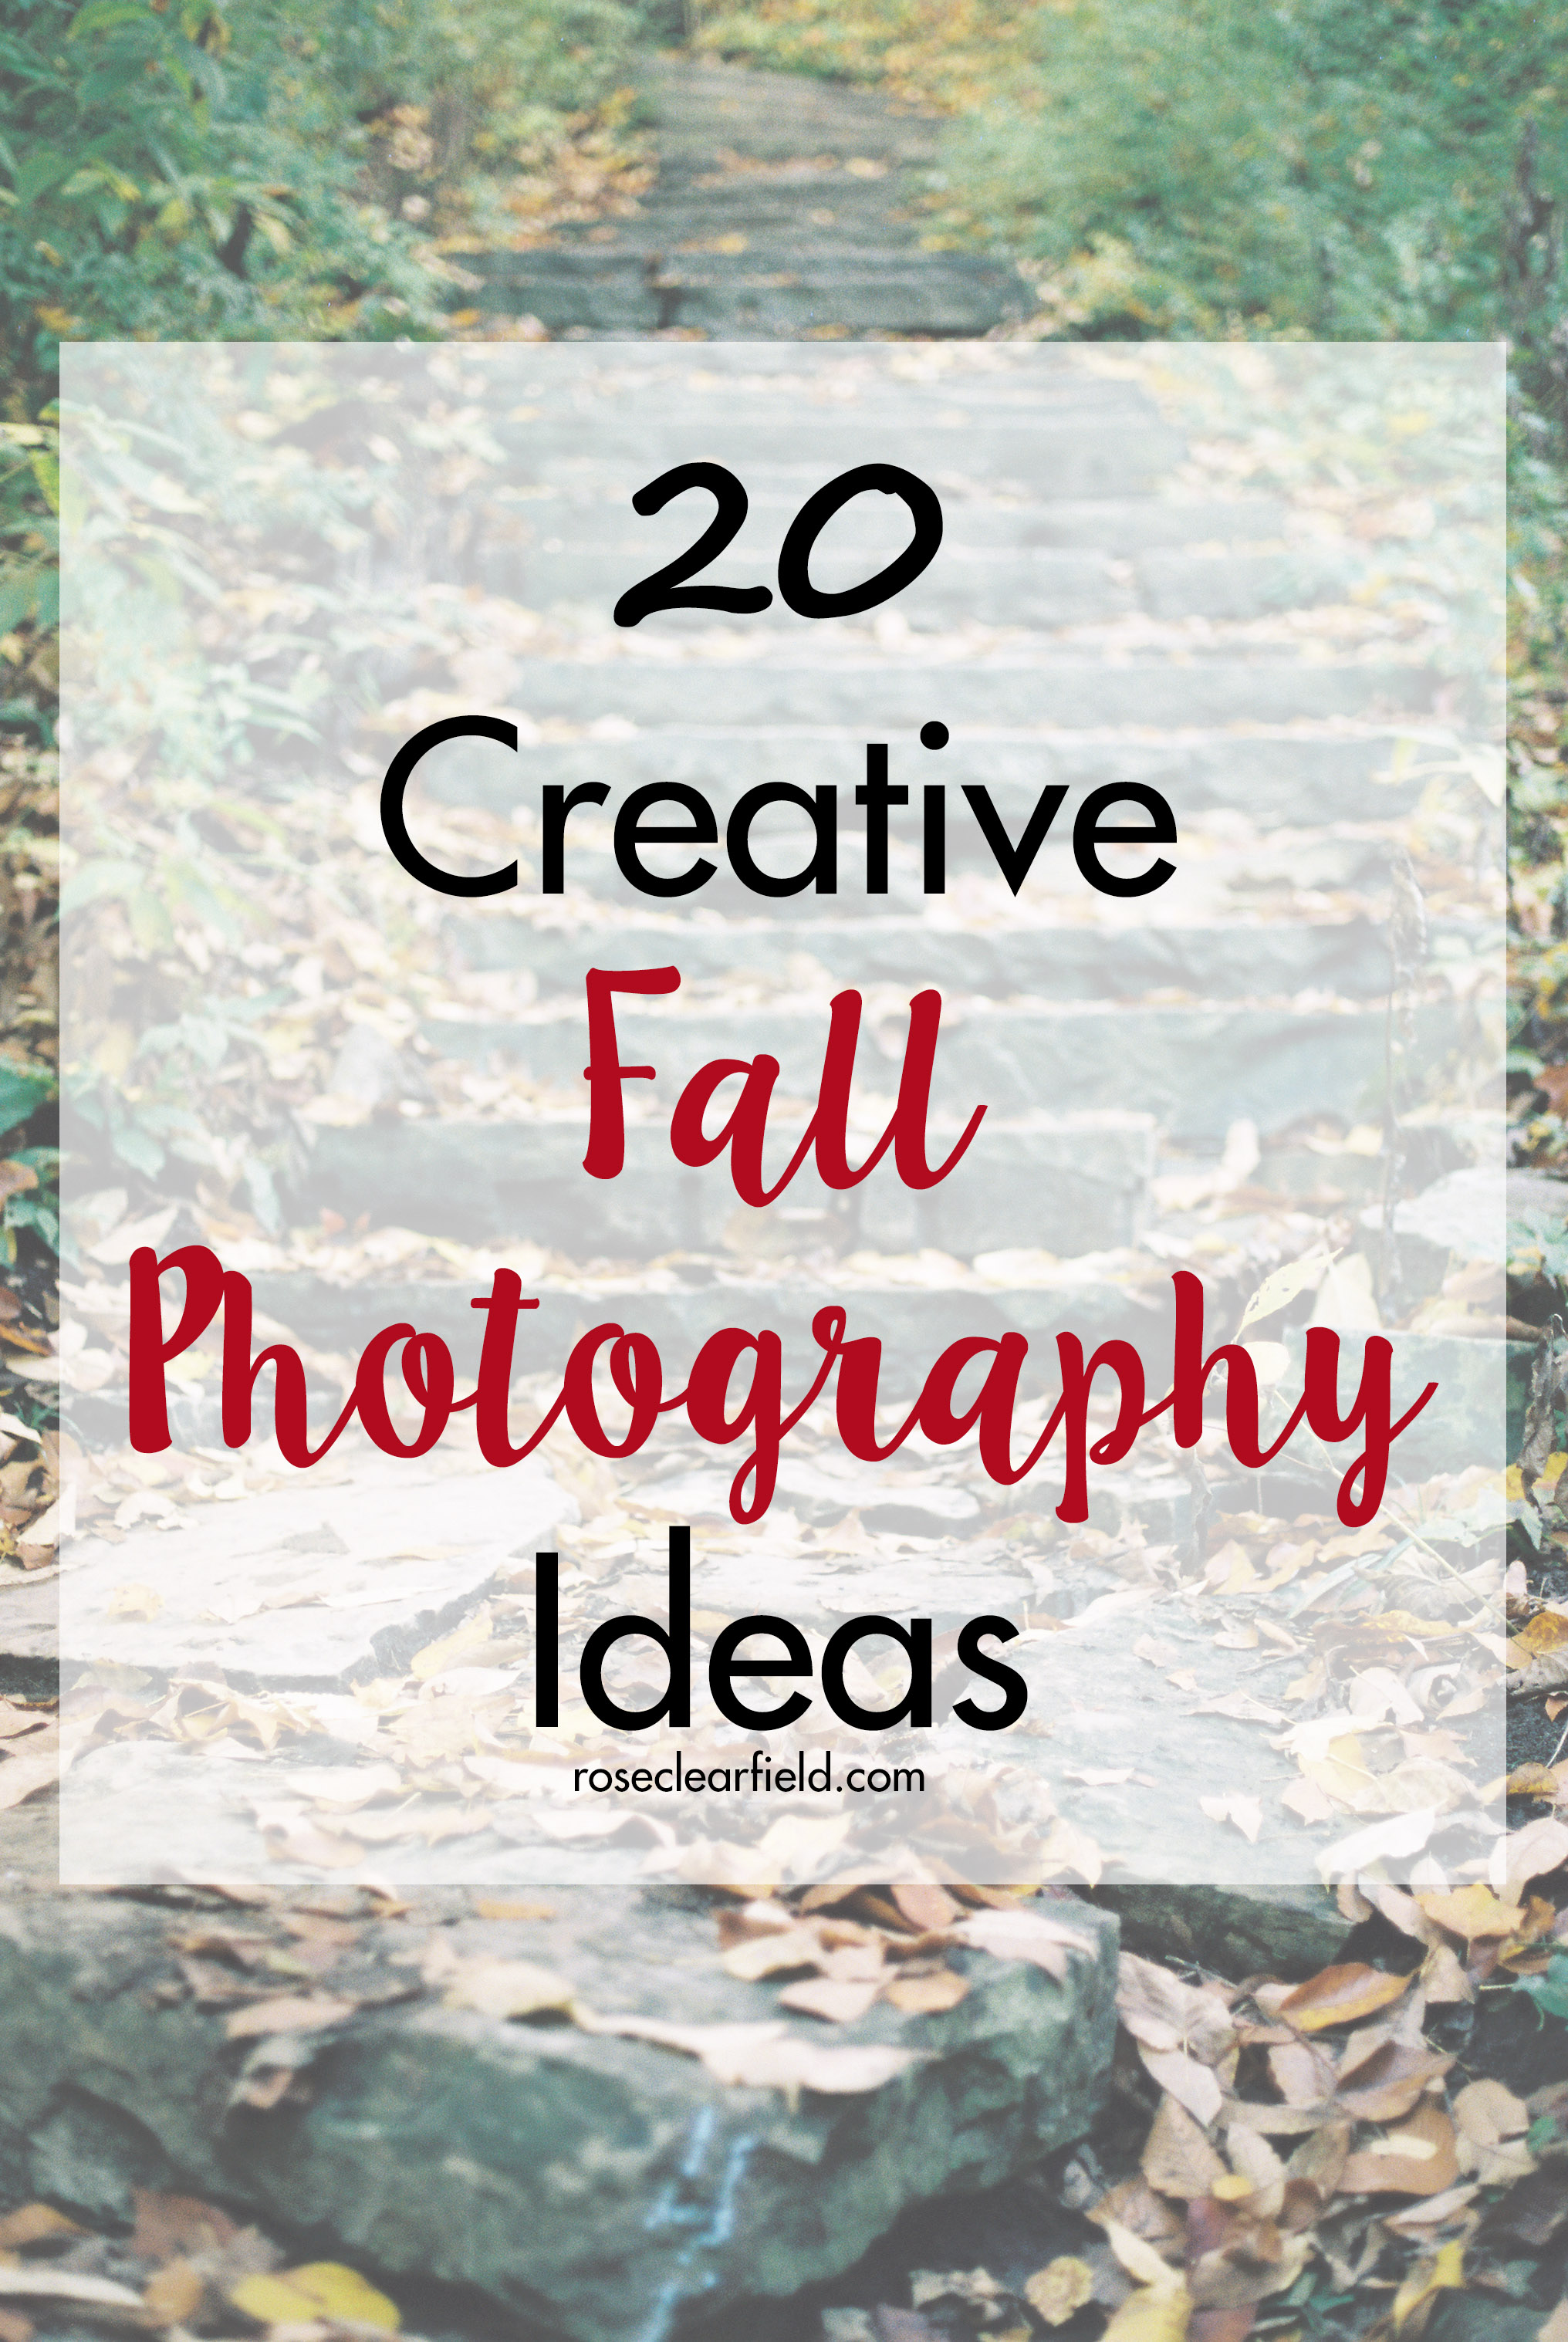 20 Creative Fall Photography Ideas | https://www.roseclearfield.com